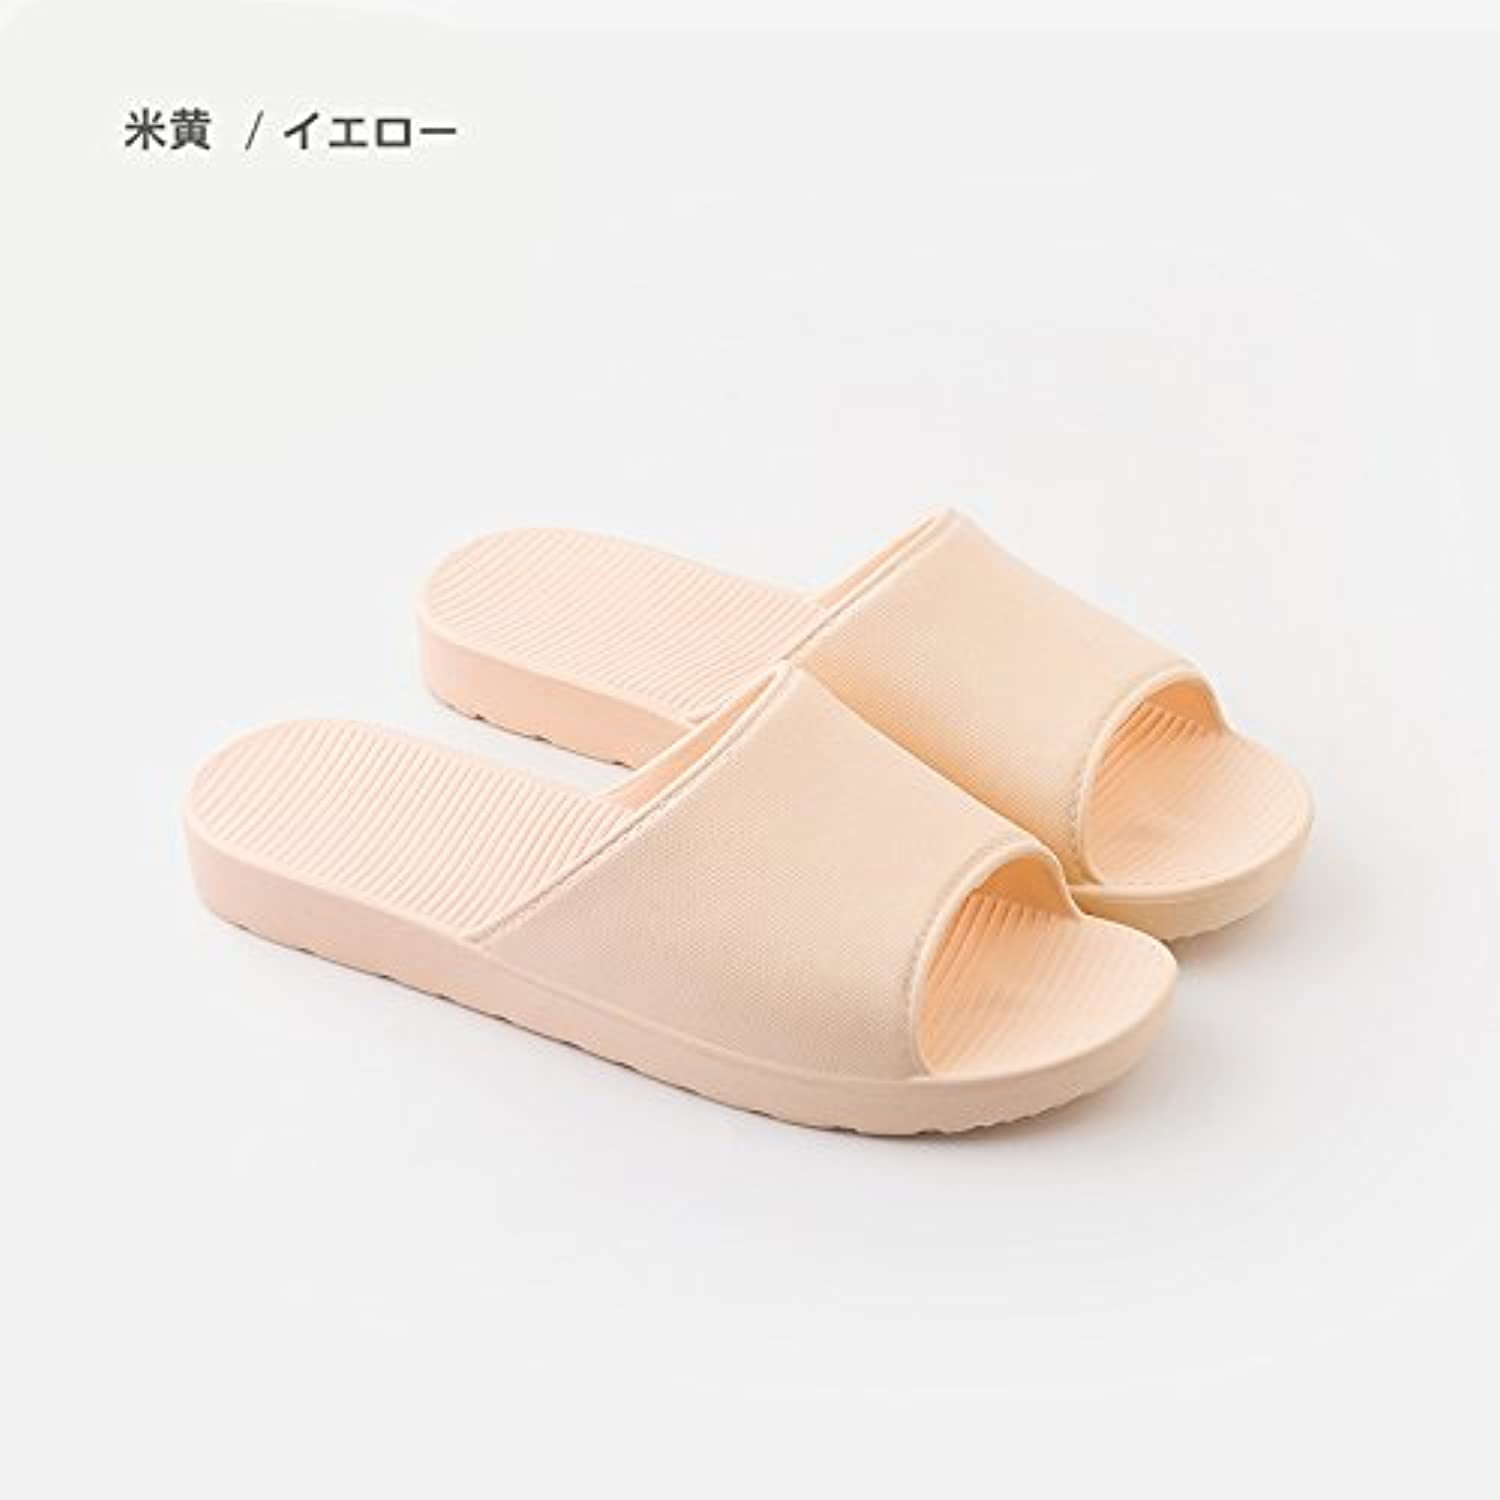 fankou Stay a Couple Indoor Couples Shower Slippers Girls Home and Deodorization Anti-Slip Bath Bath Slippers...